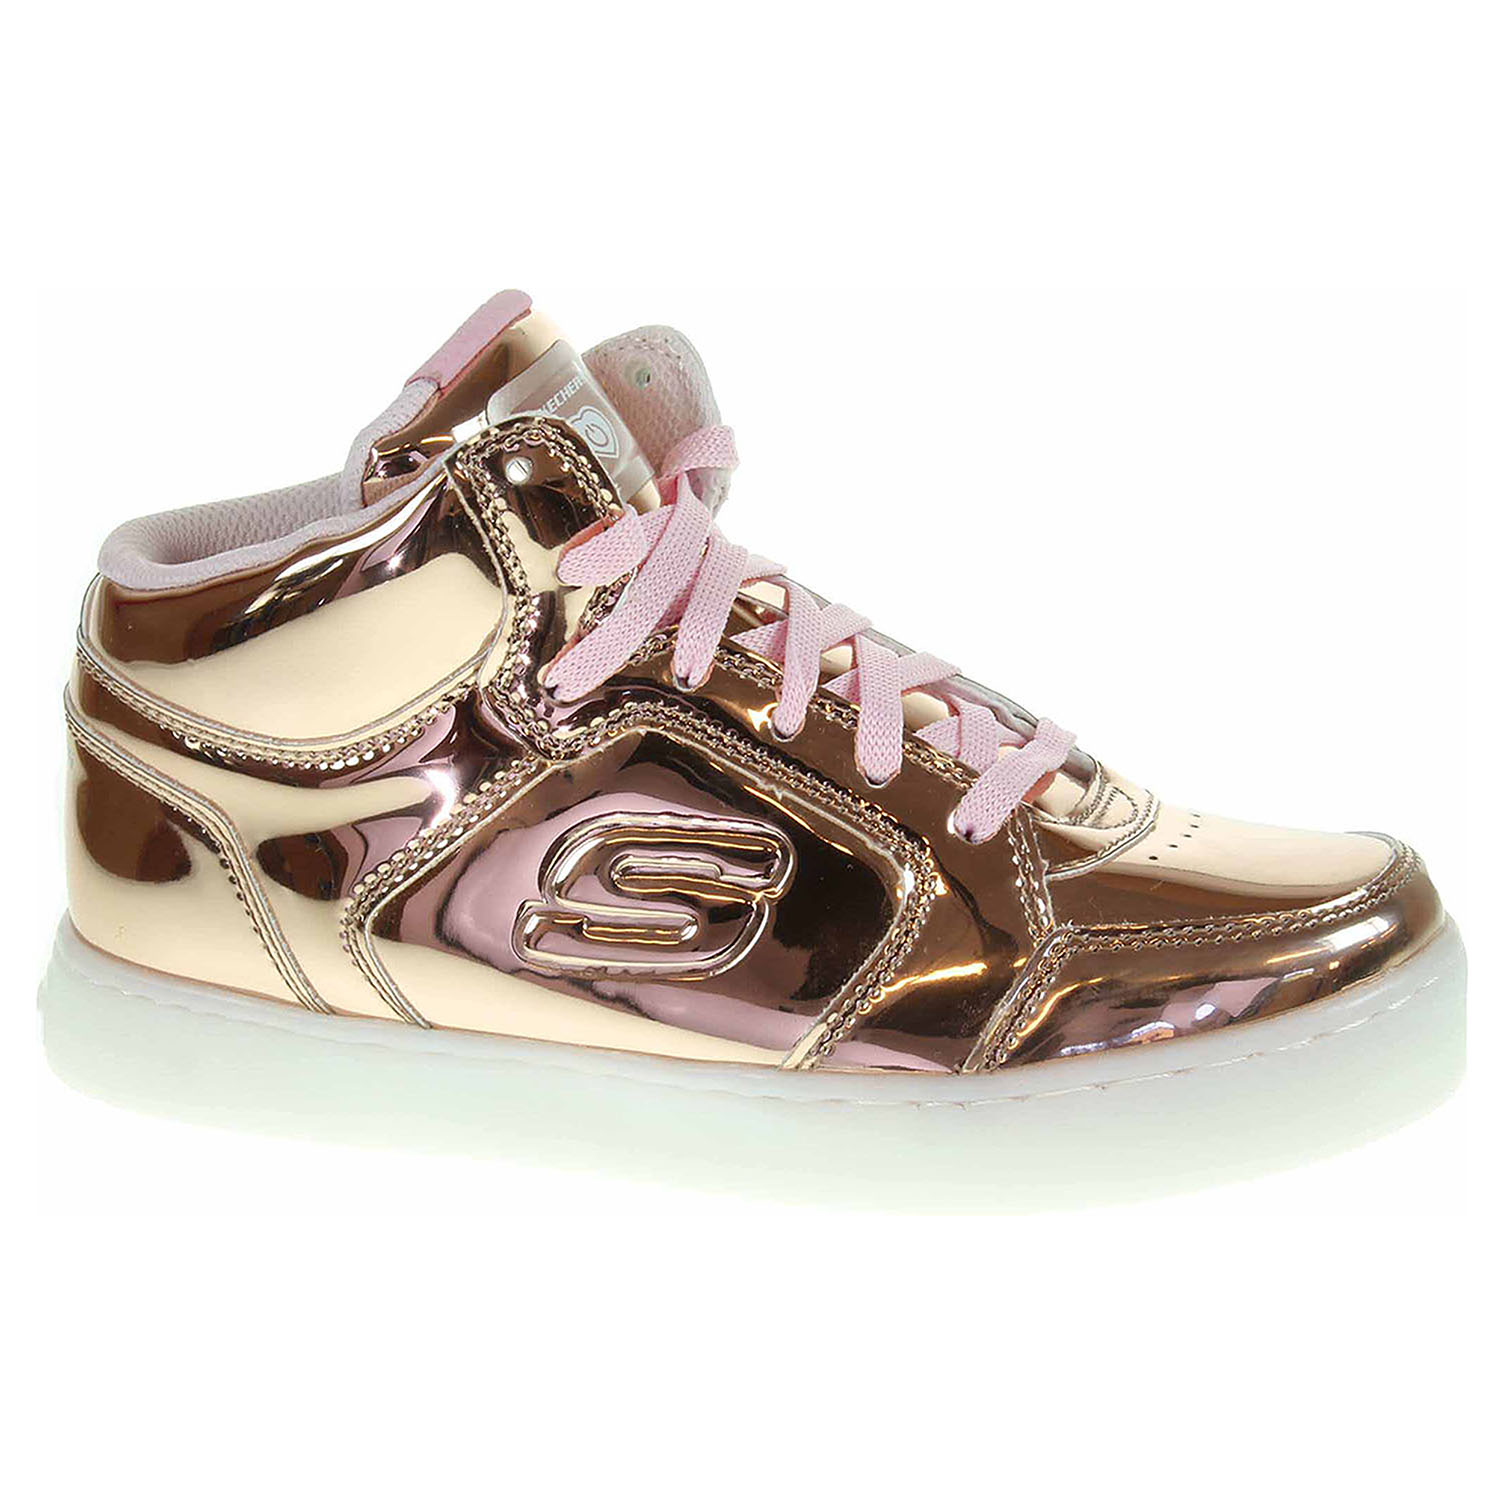 Ecco Skechers S Lights Energy Lights Dance-N-Dazzle rose gold 26200123